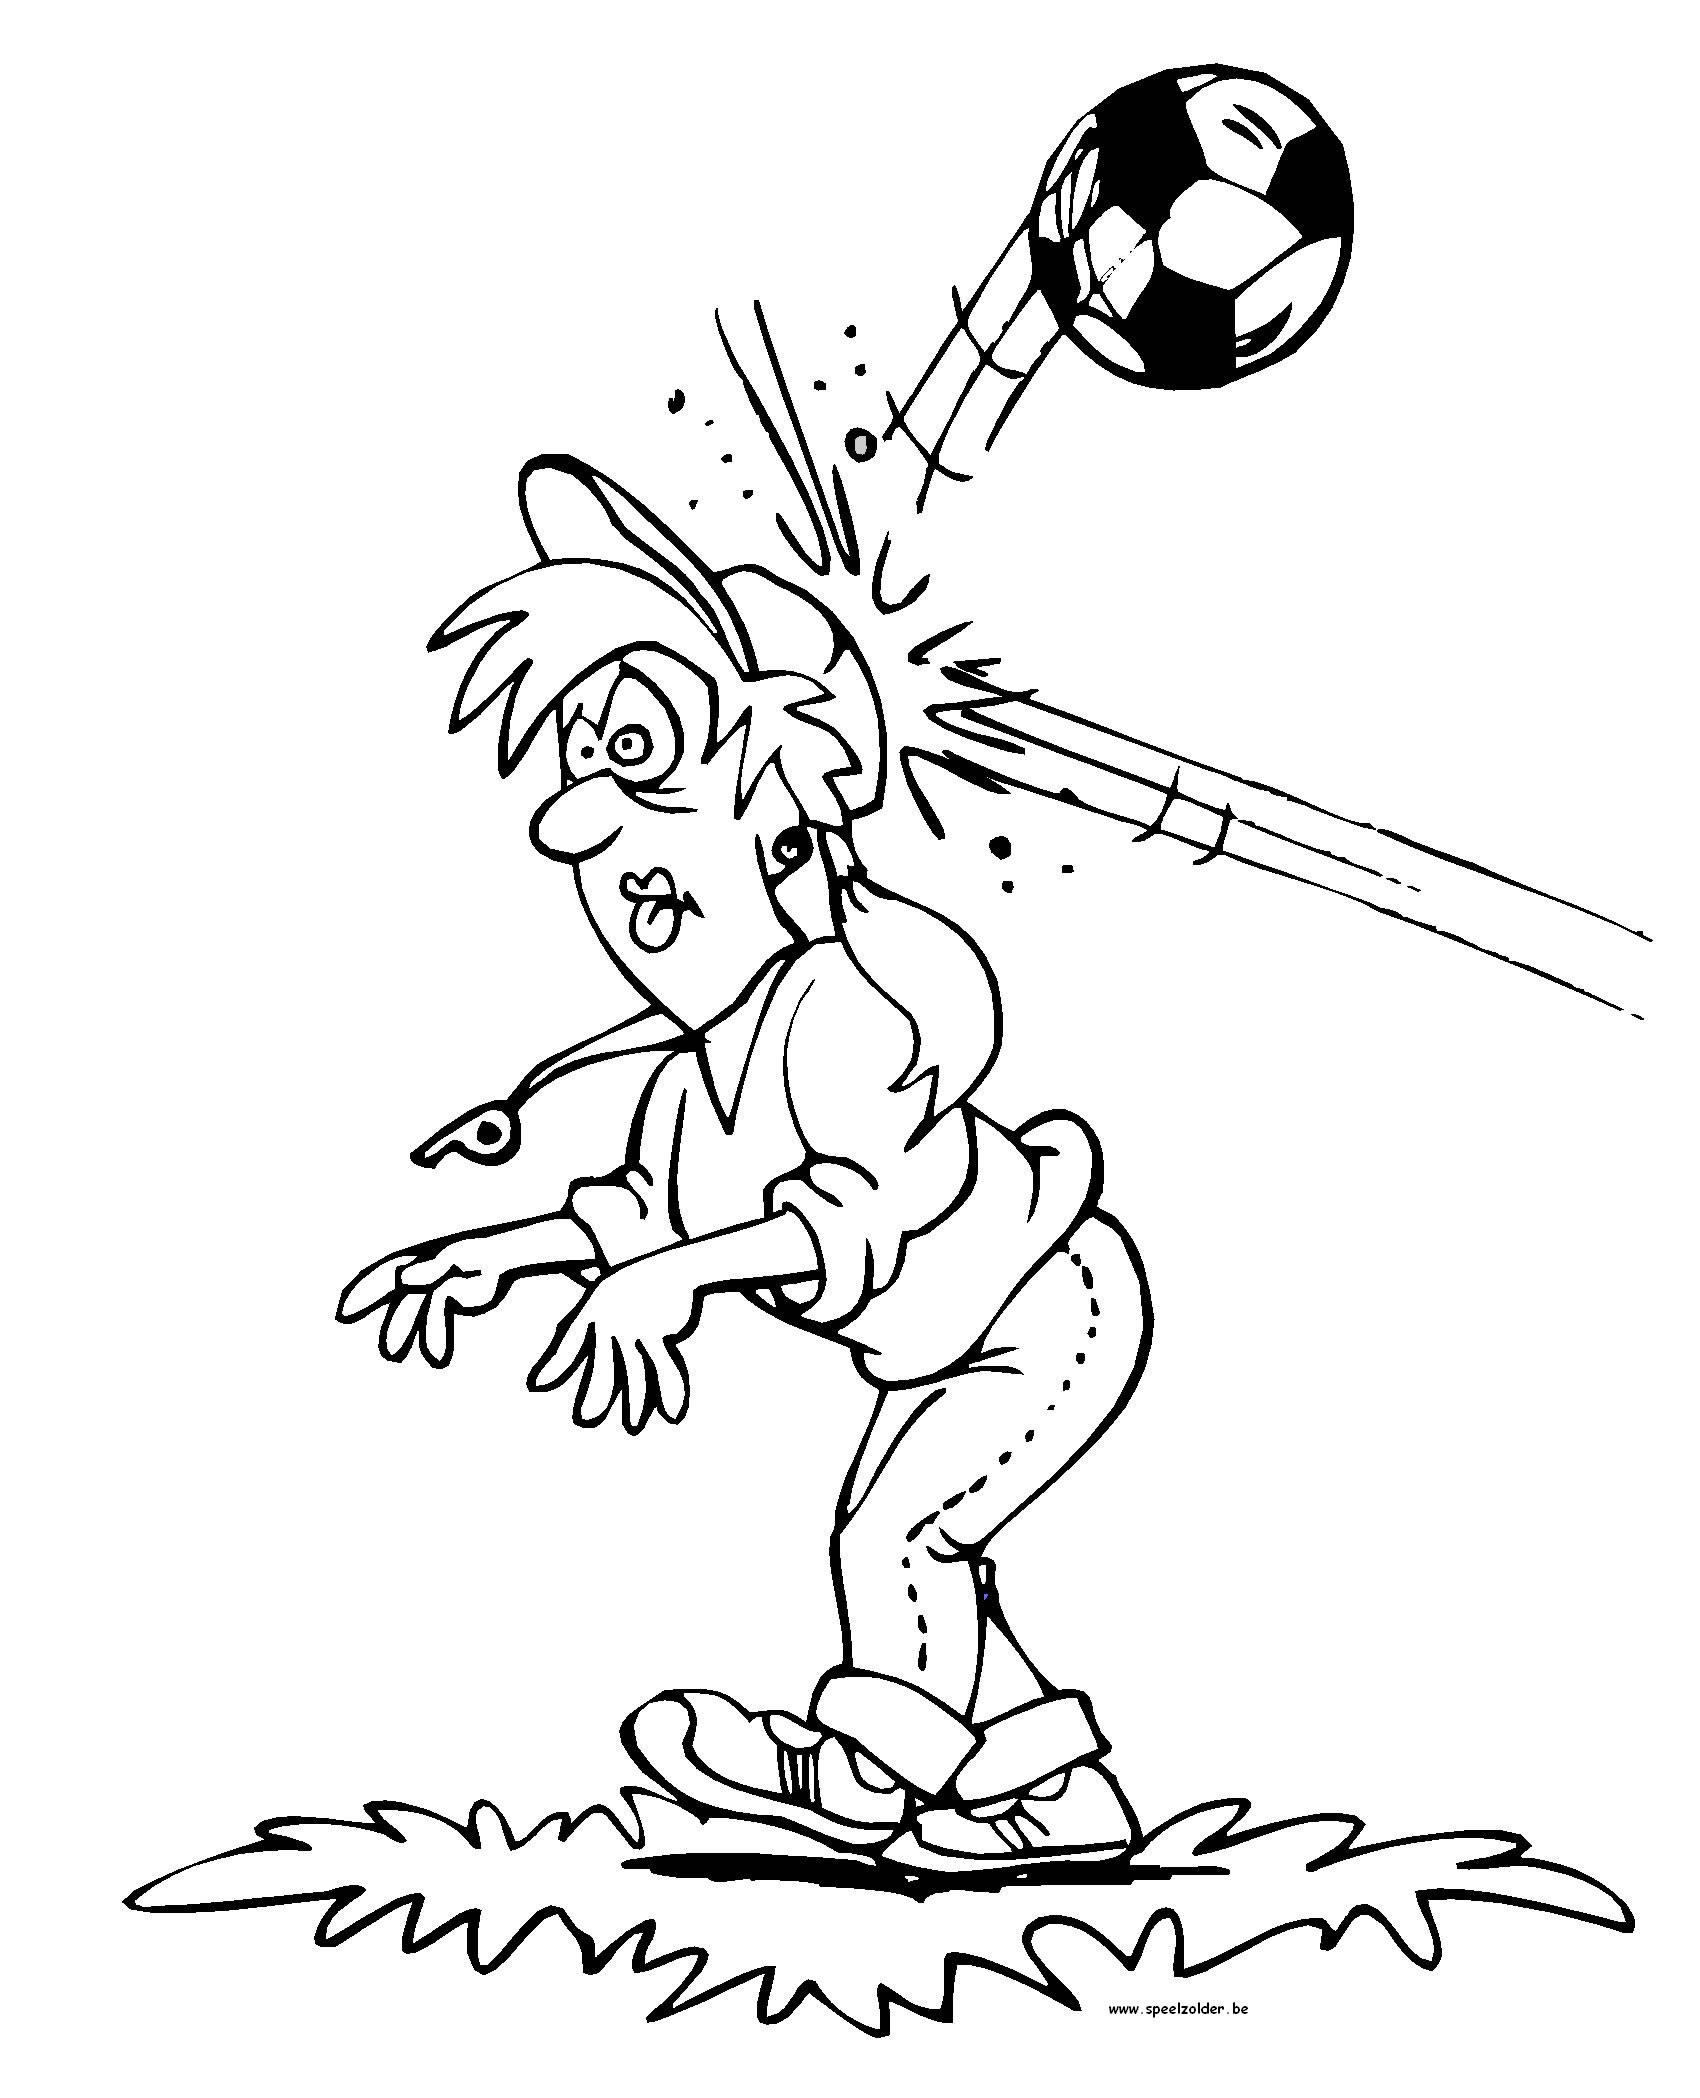 Game Coloring Sheets Soccer free | 2098x1700